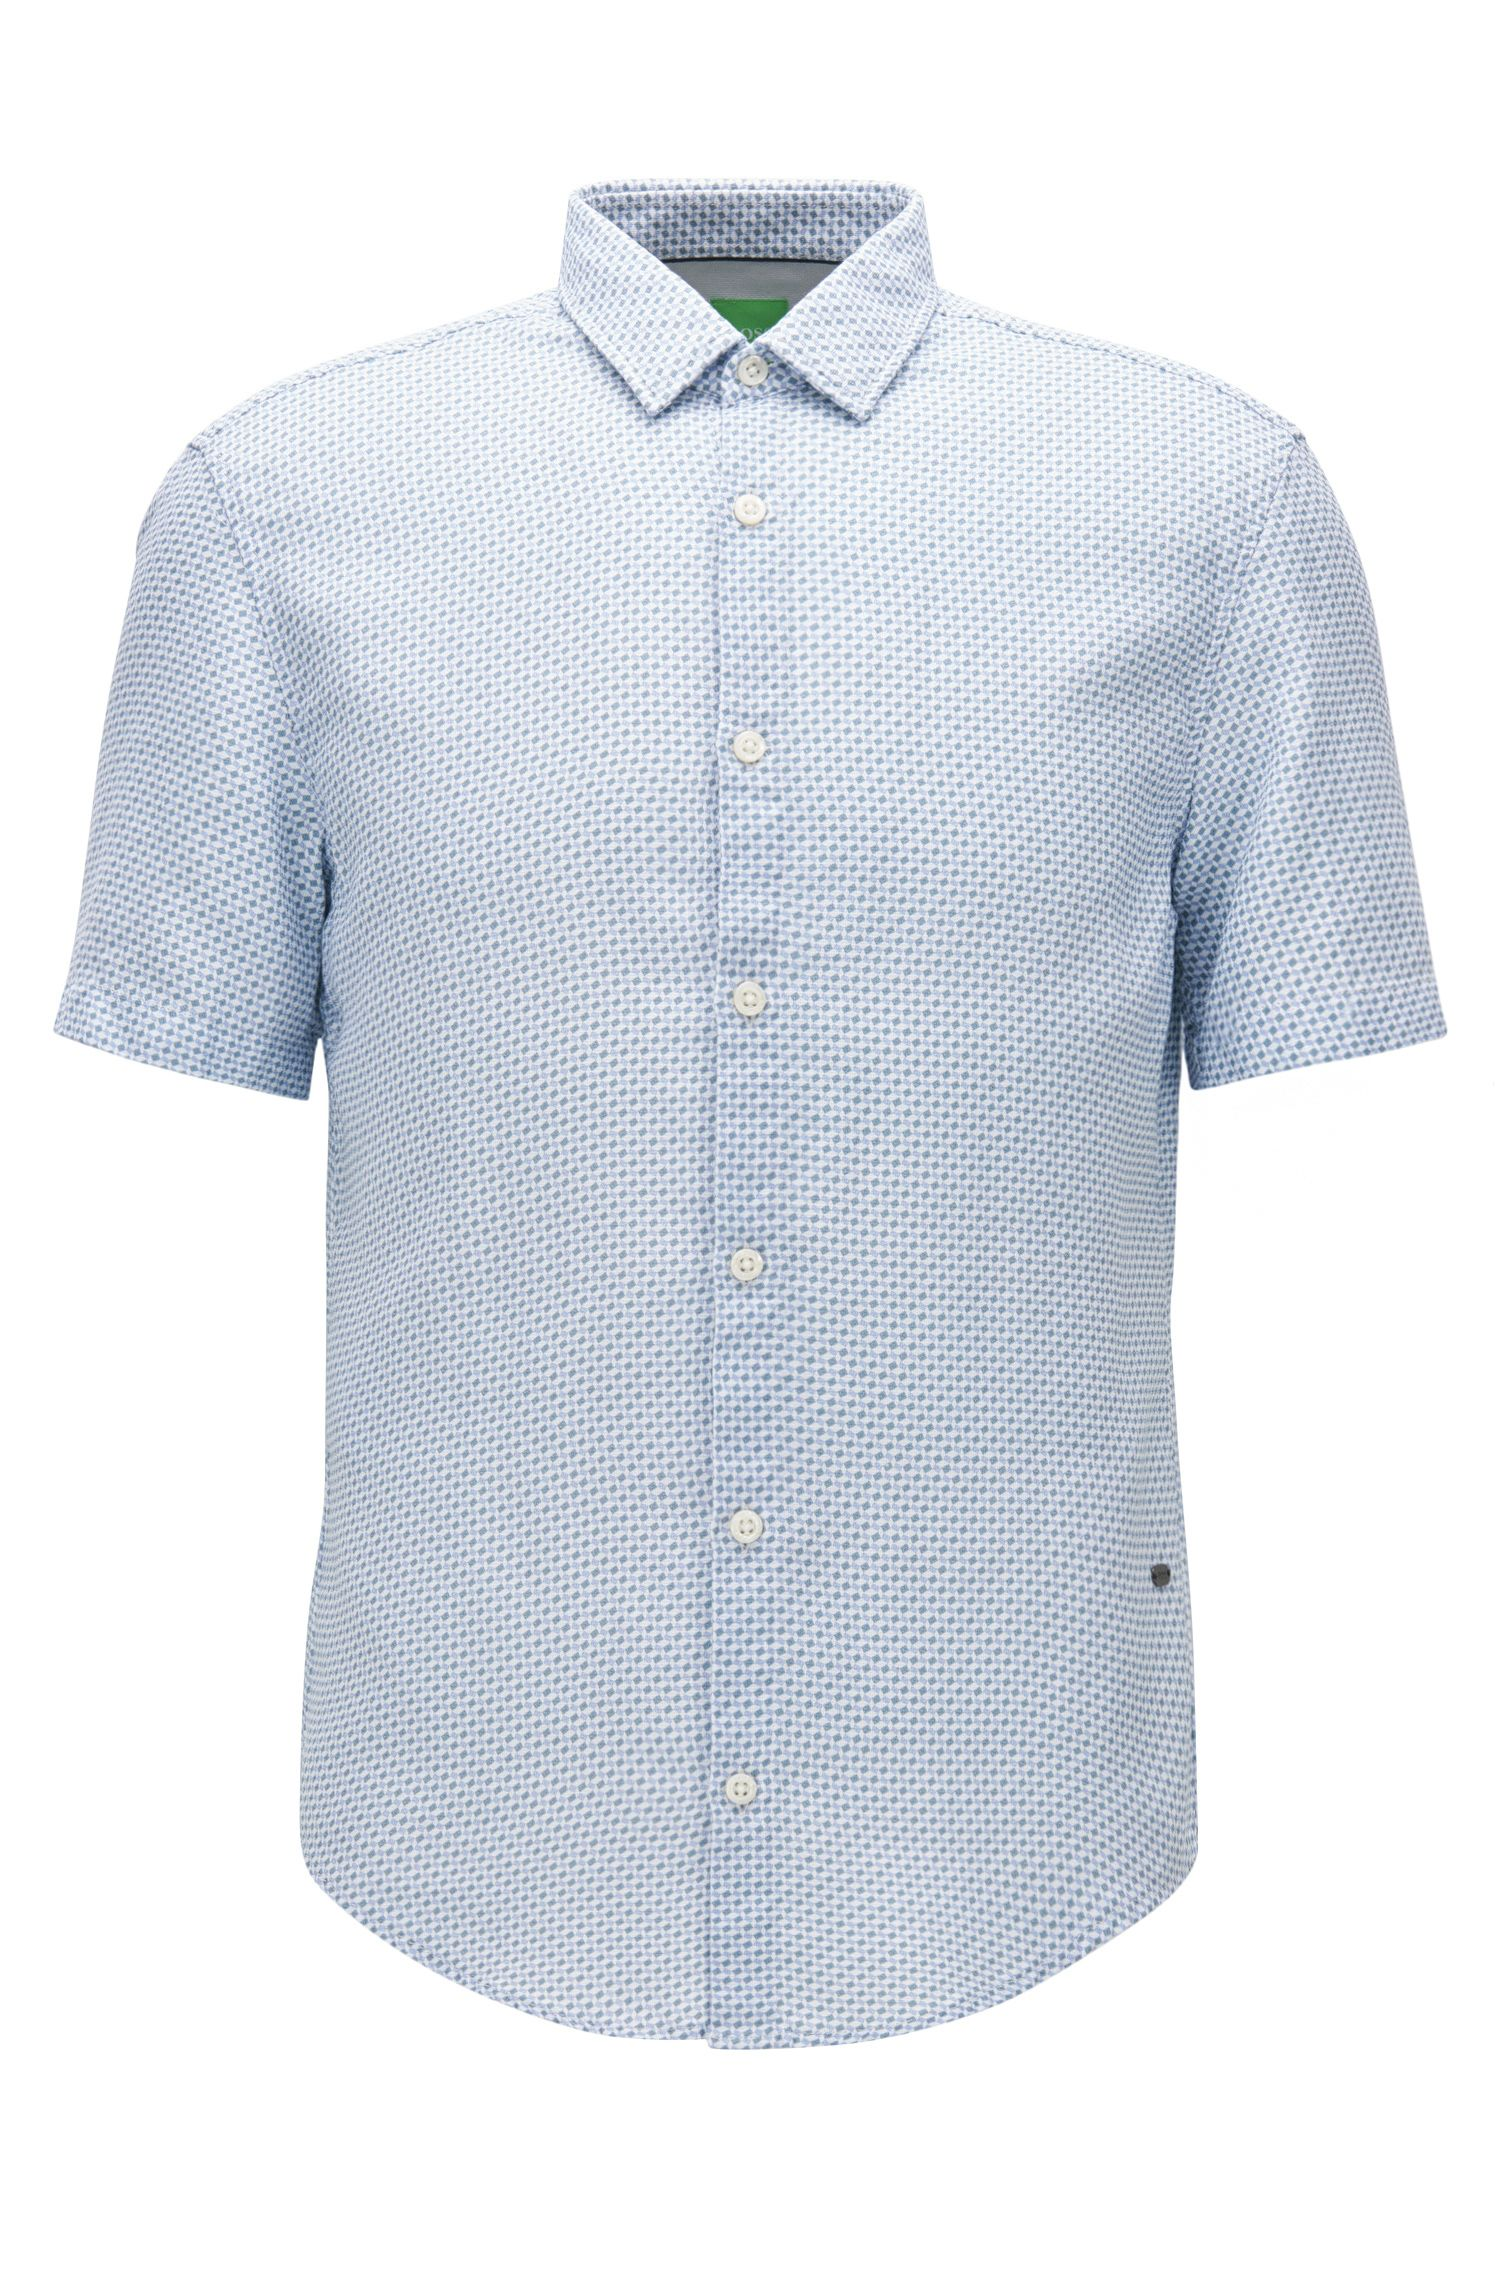 Slim-fit short-sleeved shirt in washed dobby cotton